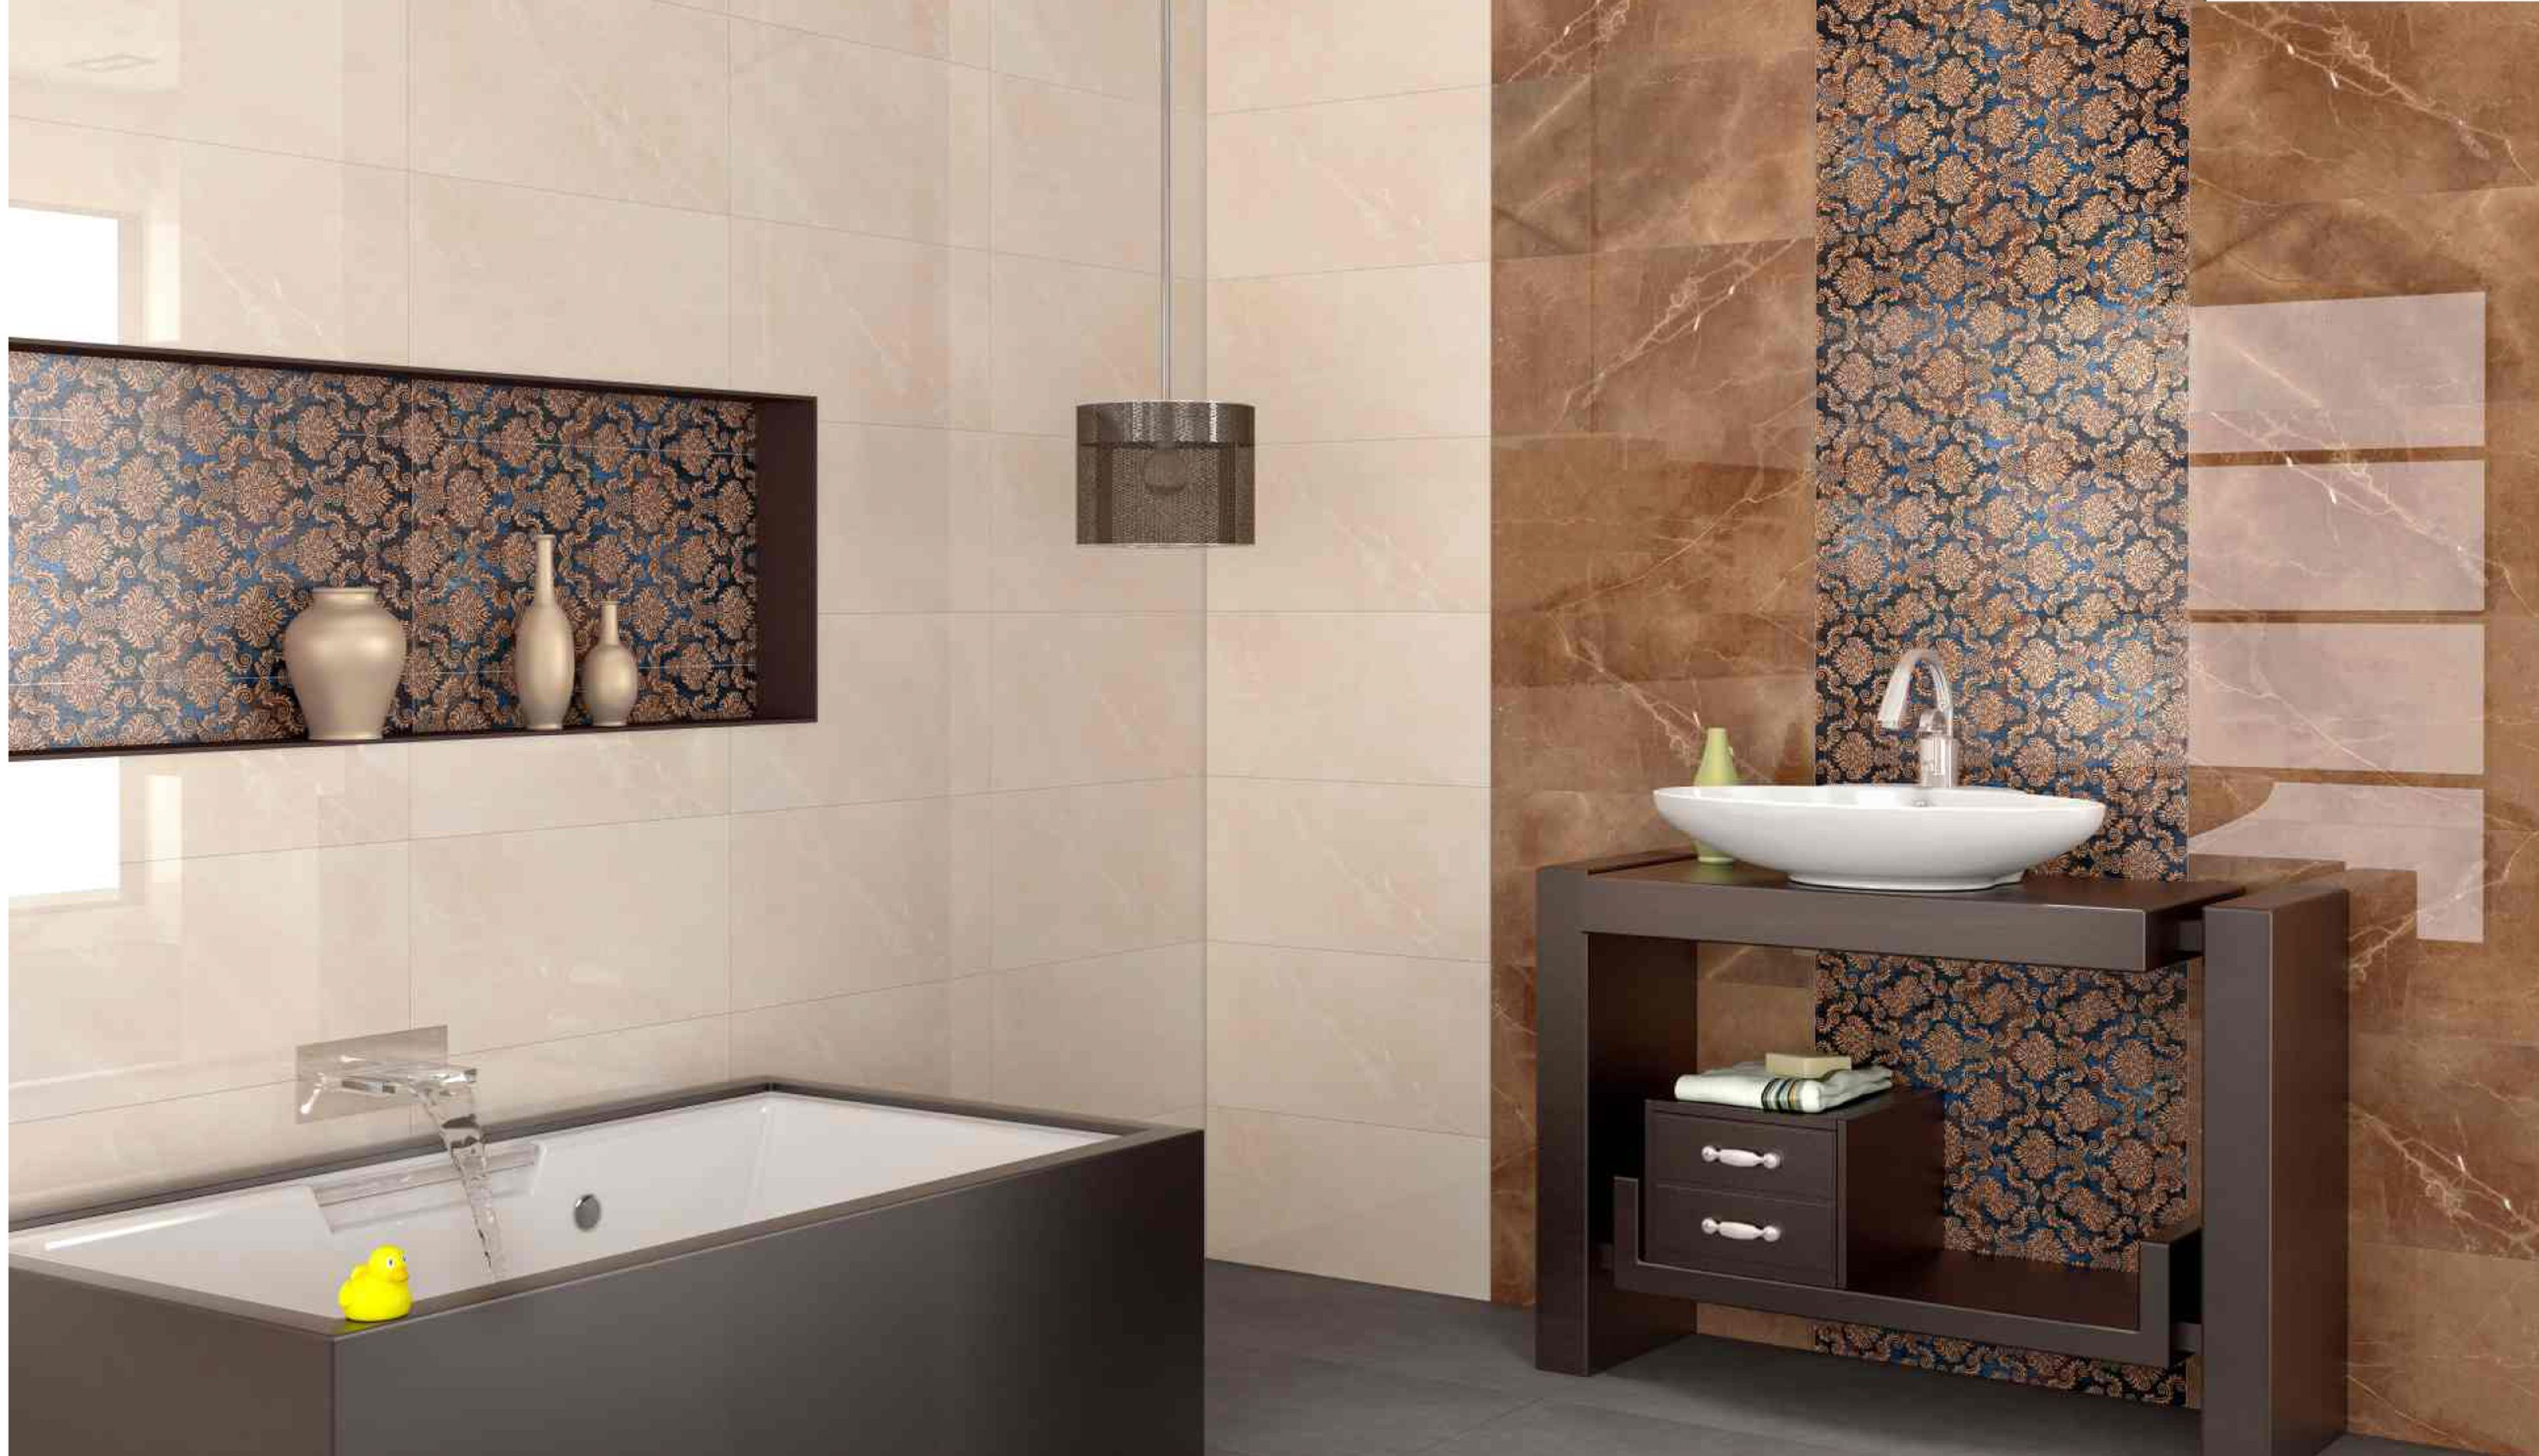 Digital Wall Tiles Manufacture In Morbi Gujarat India We Face Impex Pvt Ltd Always Works For Bathroom Wall Tile Design Wall Tiles Design Bathroom Wall Tile